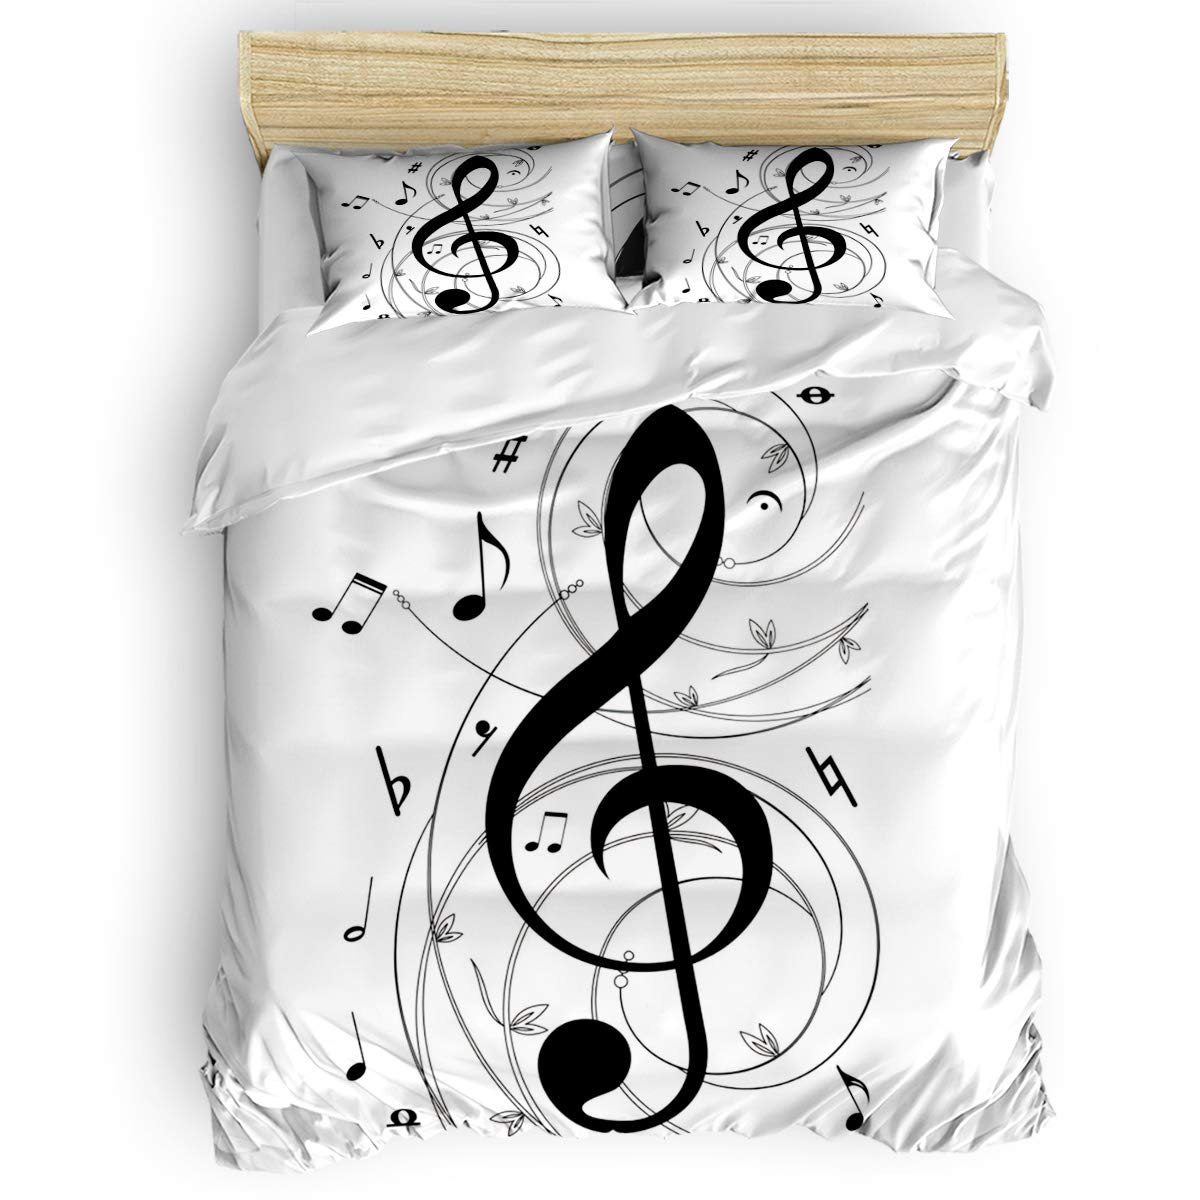 CHARMHOME Duvet Cover Set Full Size - Musical Note and Melody Soft 4 Piece Bedding with Sheet Set and 2 Decorative Pillows Shams - No Comforter by CHARMHOME